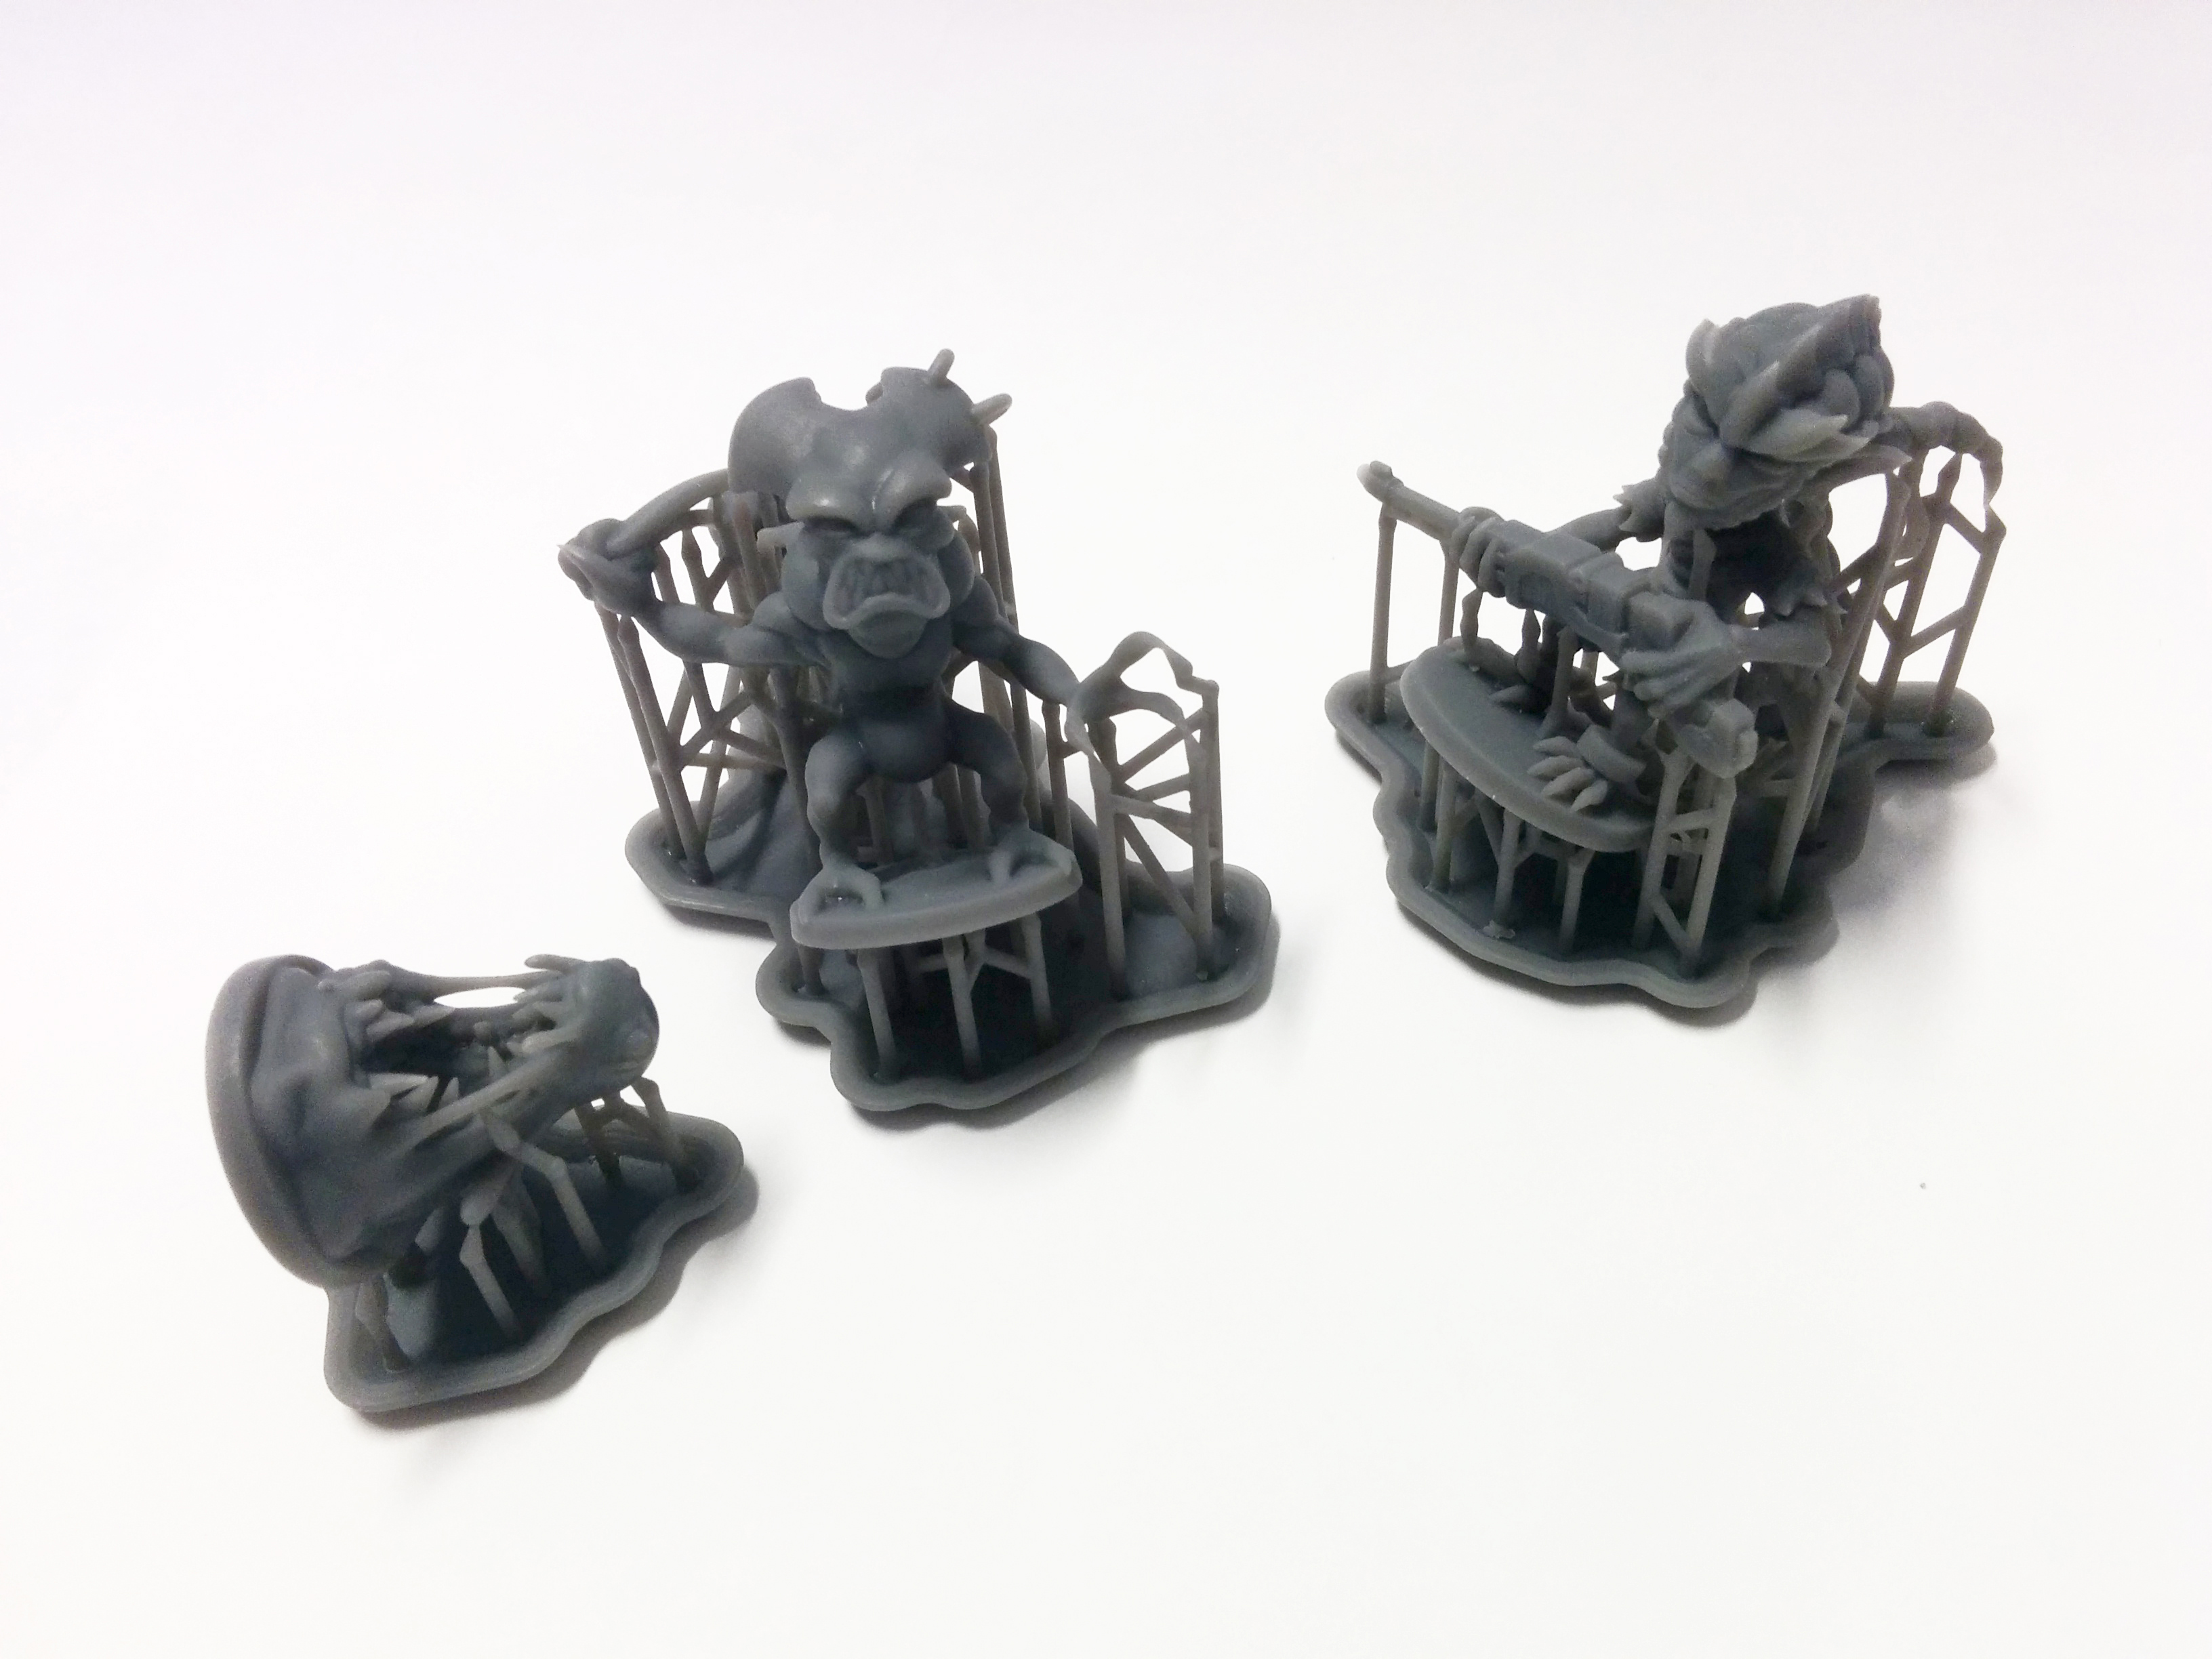 How to start 3D printing your own gaming minis